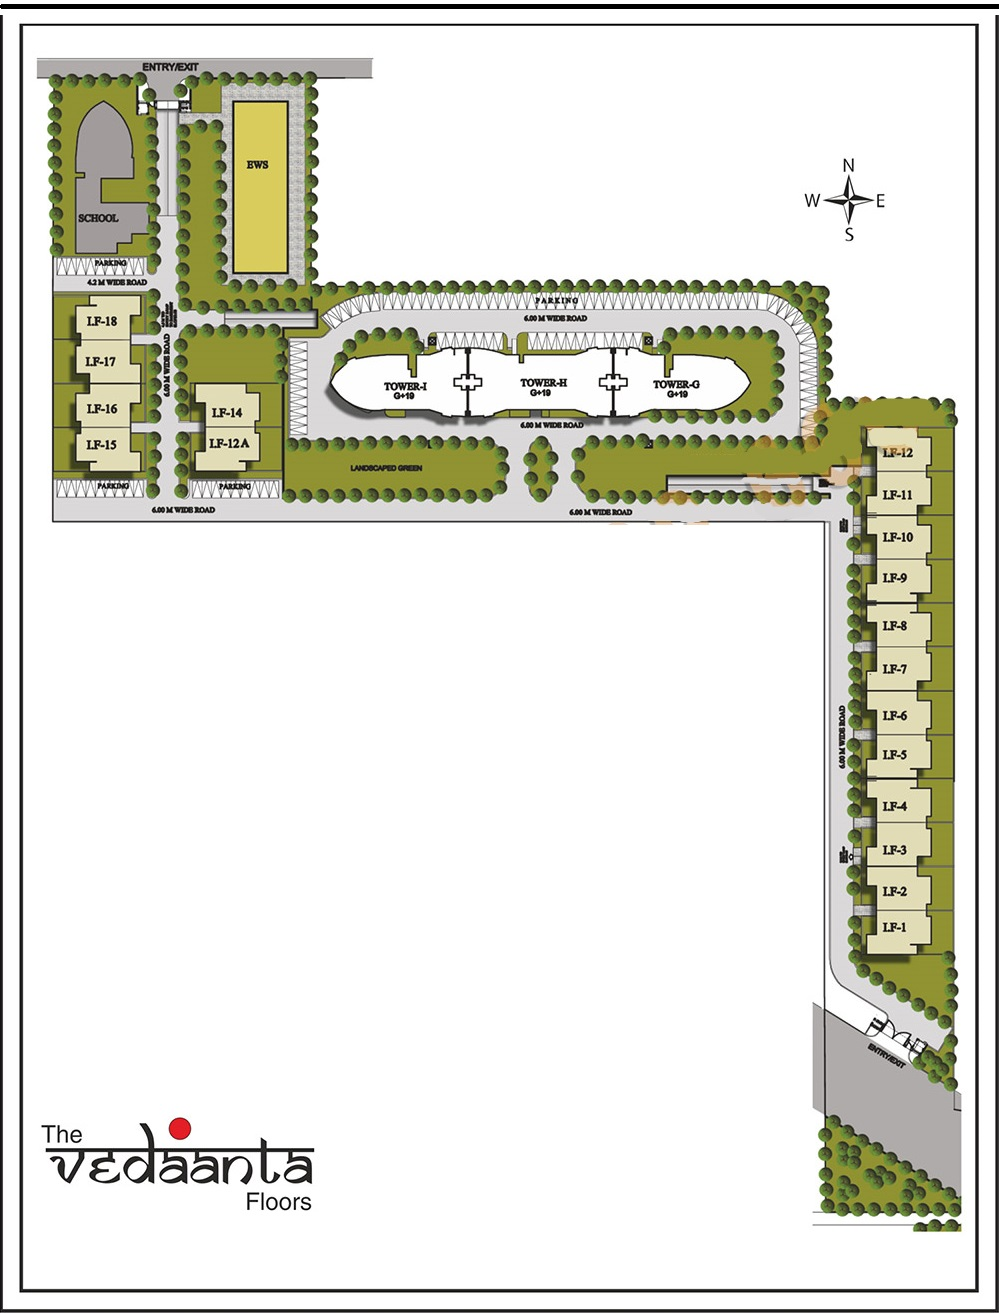 Site Plan of Raheja Vedaanta Floors